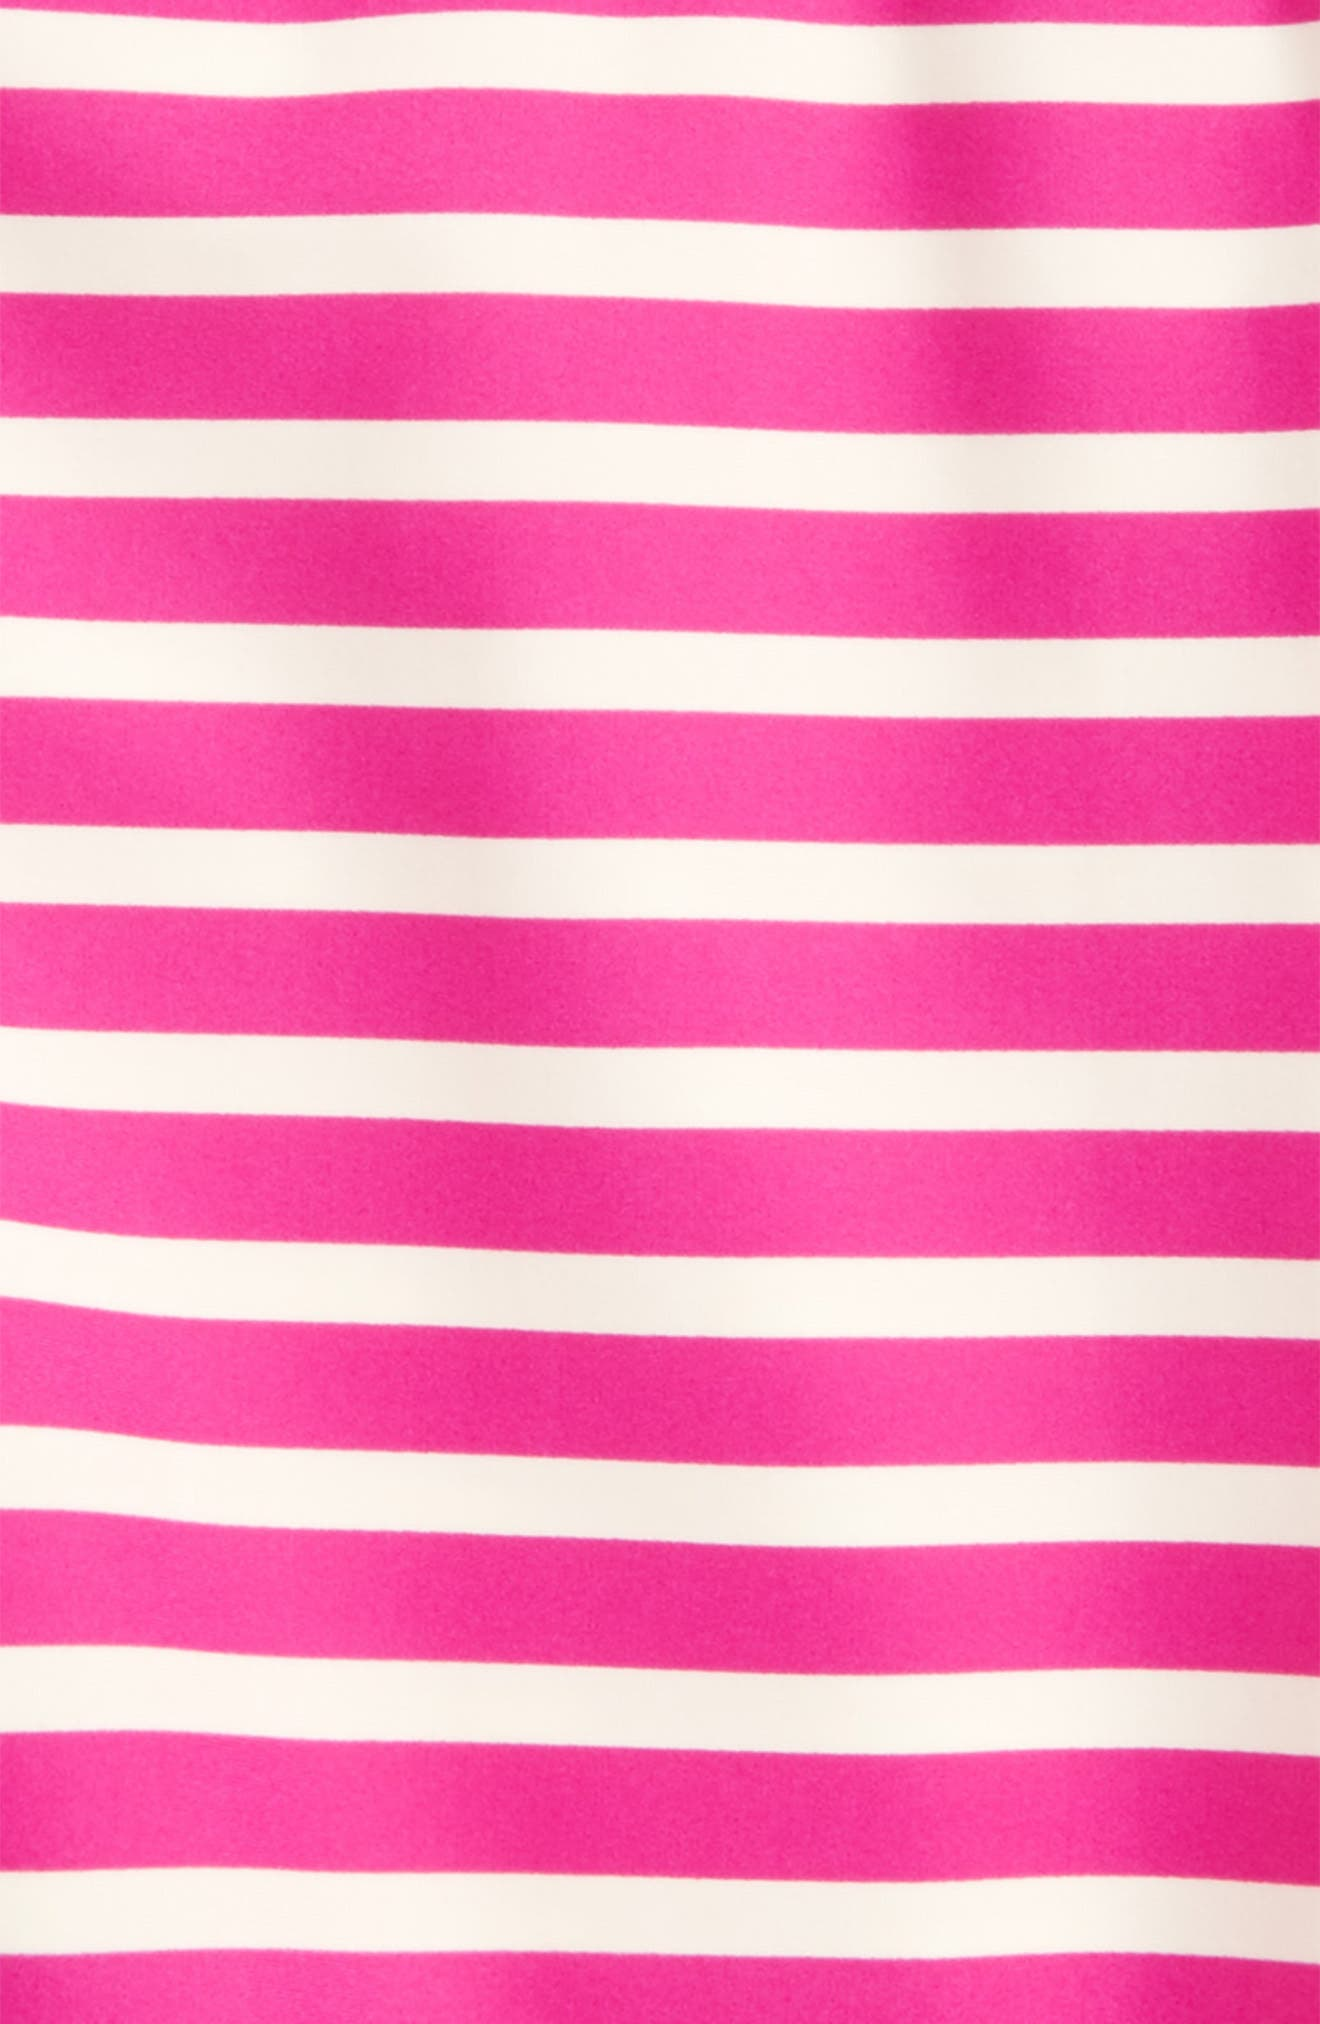 Stripe Short Sleeve Rashguard,                             Alternate thumbnail 2, color,                             Snapdragon Tonal Stripe